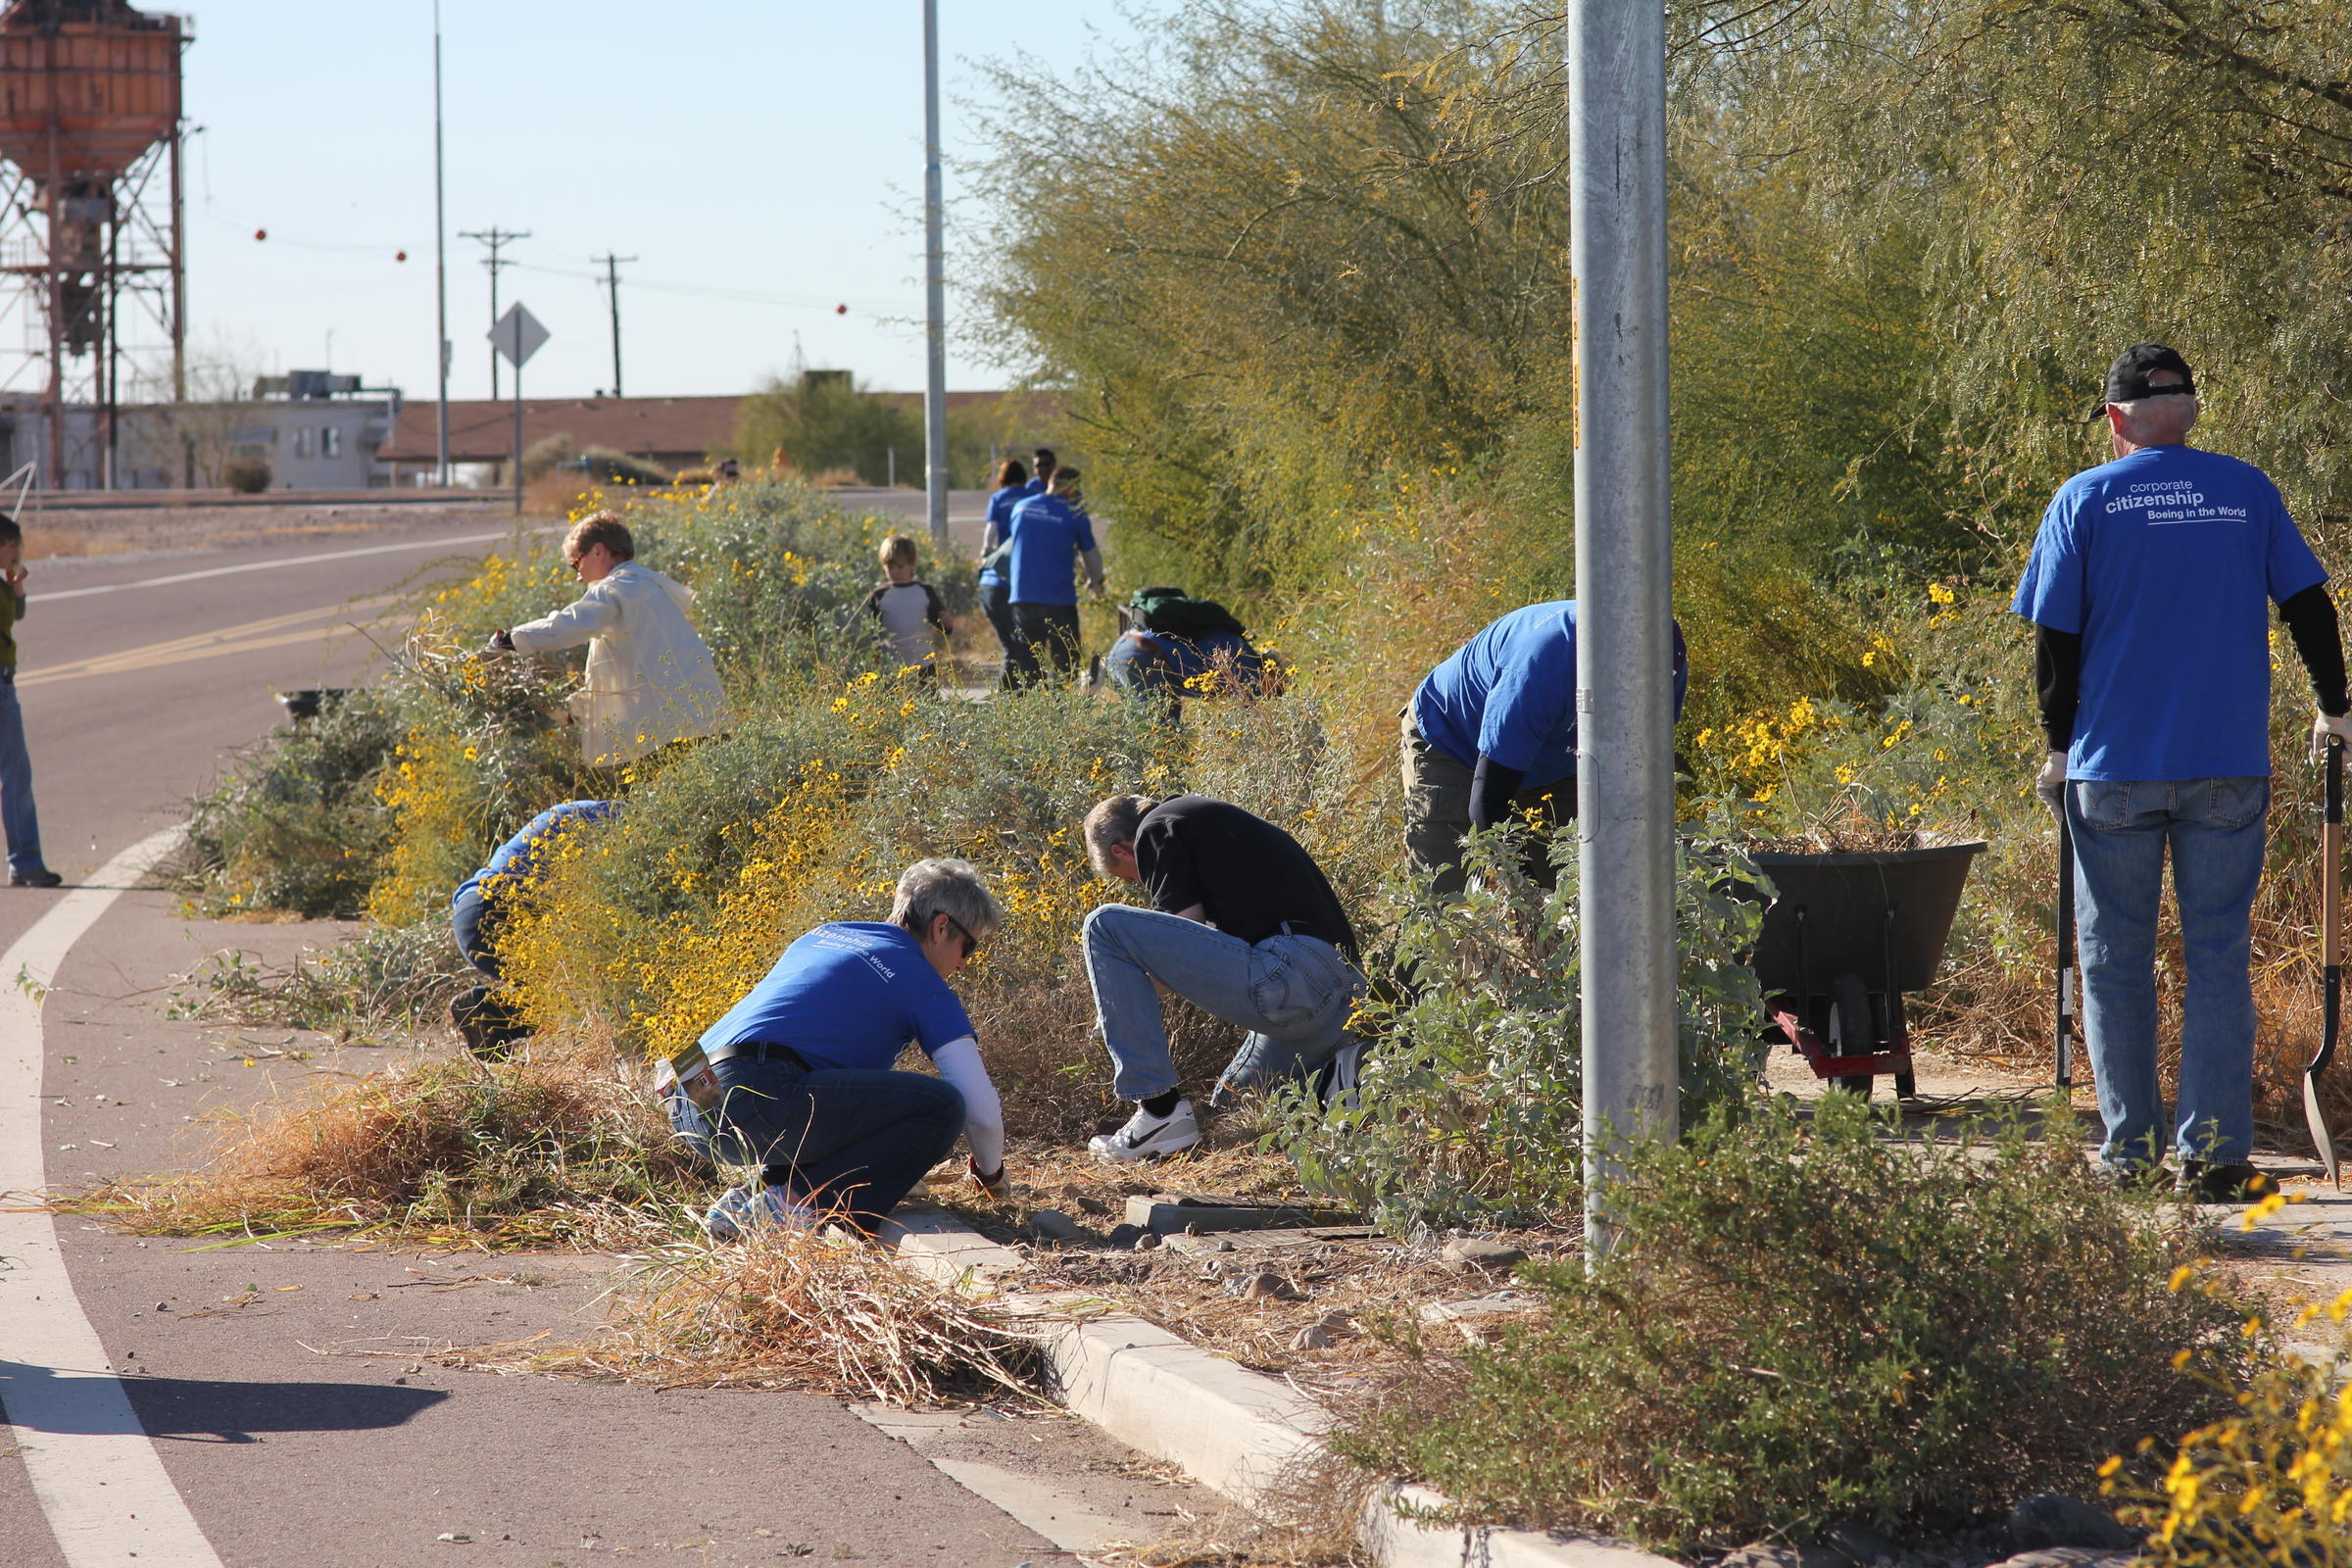 A group of mixed-age volunteers from Boeing's Corporate Citizenship program use hand pruners and wheelbarrows to remove invasive grasses and other weeds from the Rio Salado Audubon Center's parking lot border.